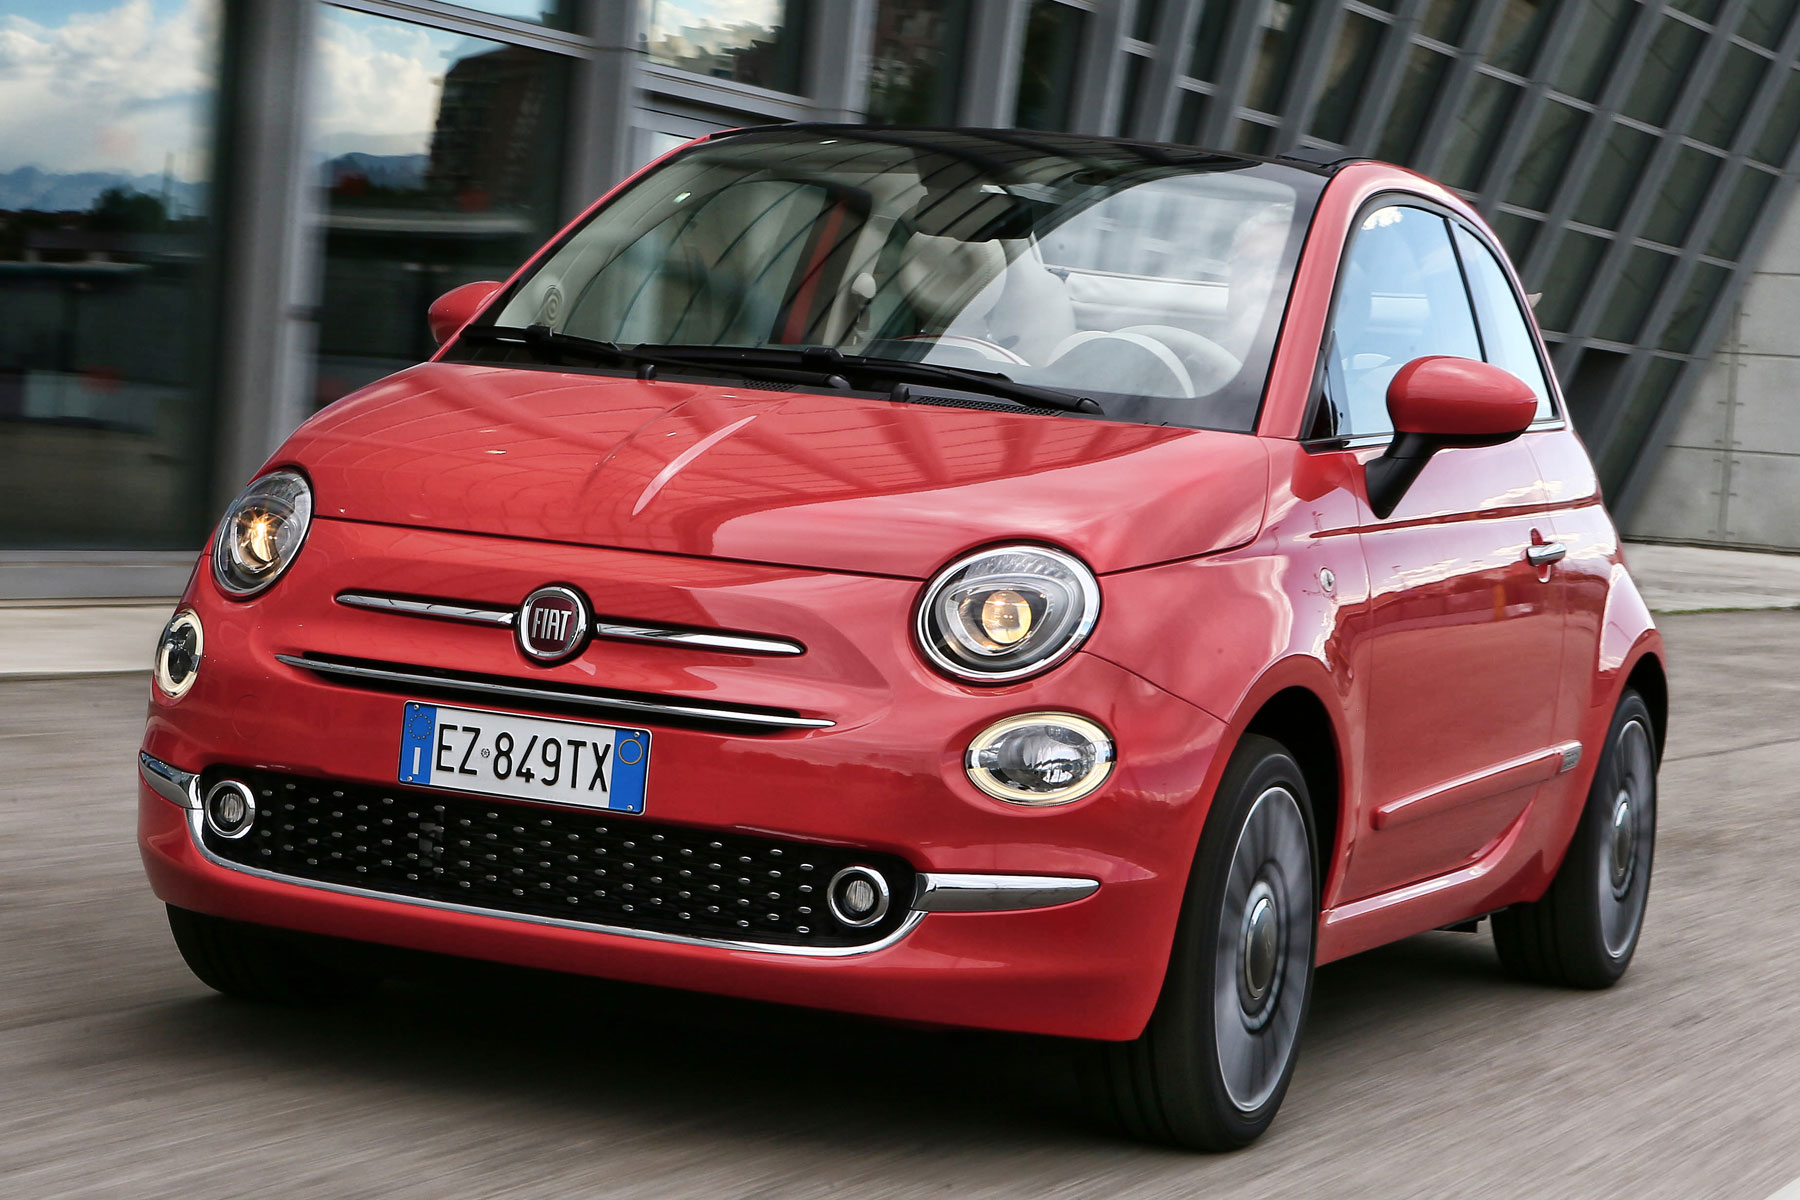 fiat 500 review 2015 first drive motoring research. Black Bedroom Furniture Sets. Home Design Ideas